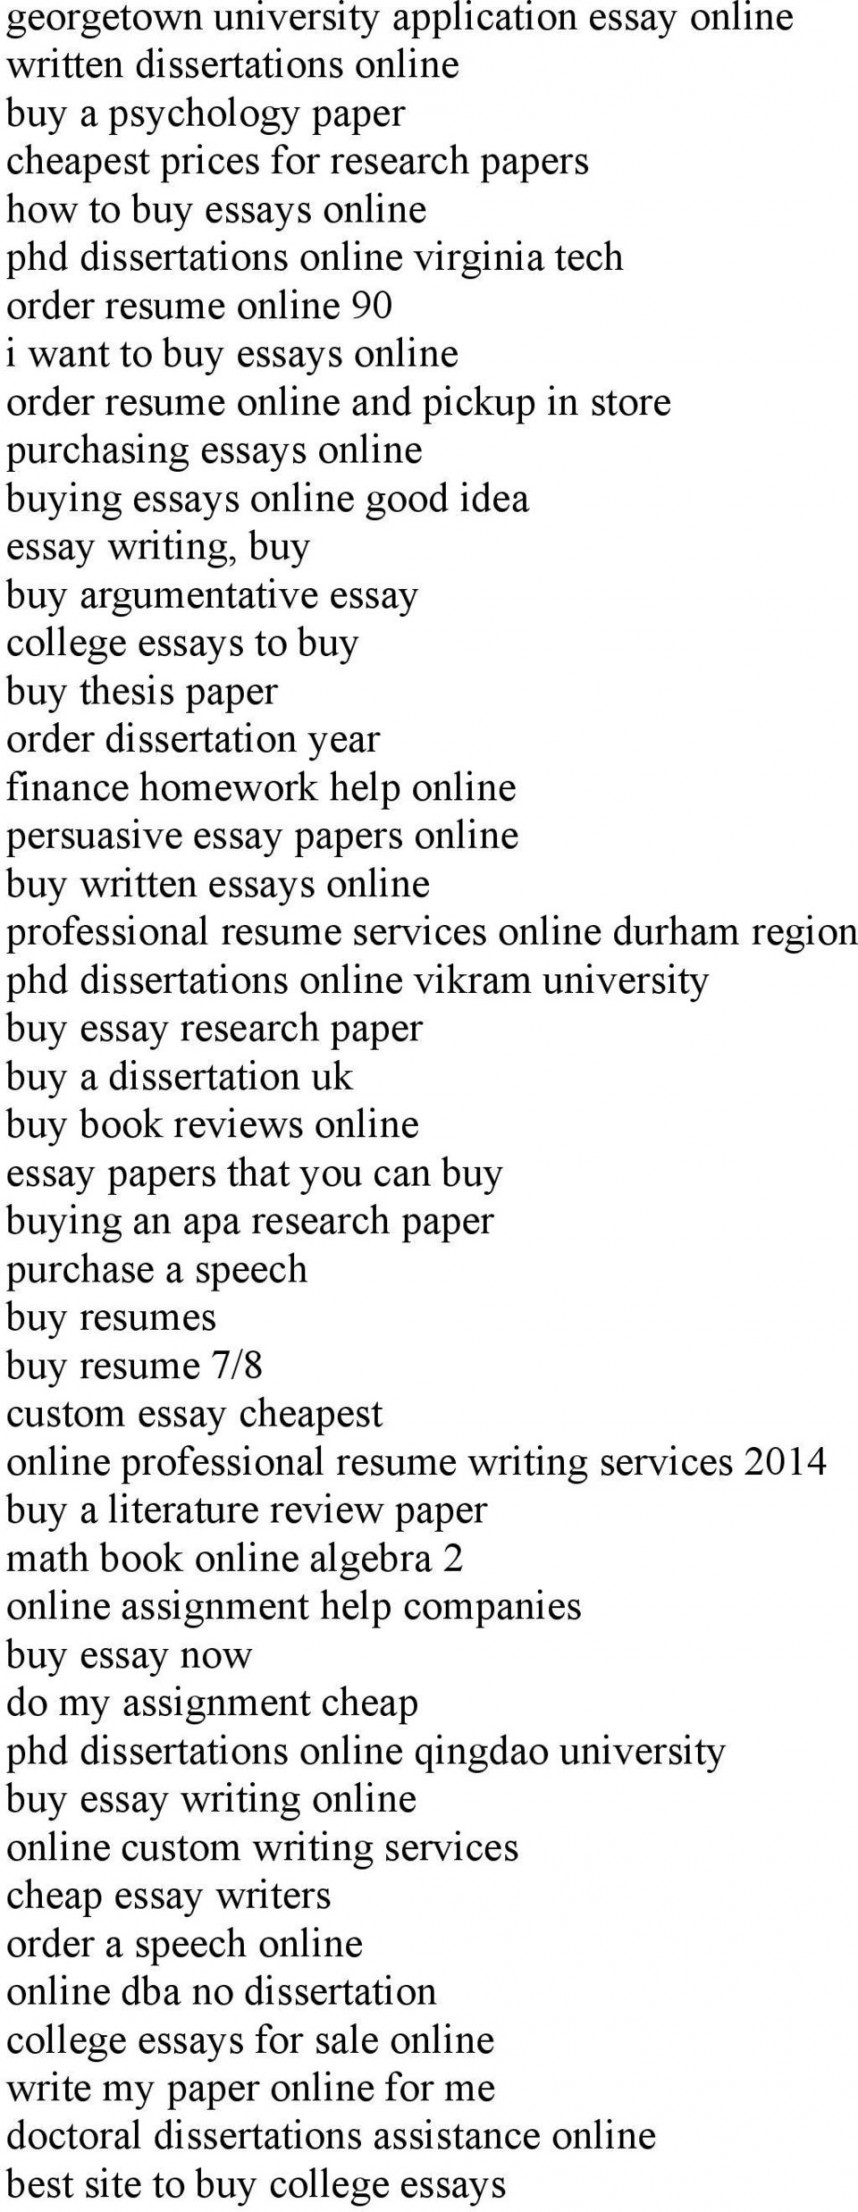 004 Research Paper Buying Page 4 Best A Consumer Behaviour Is Plagiarism 868